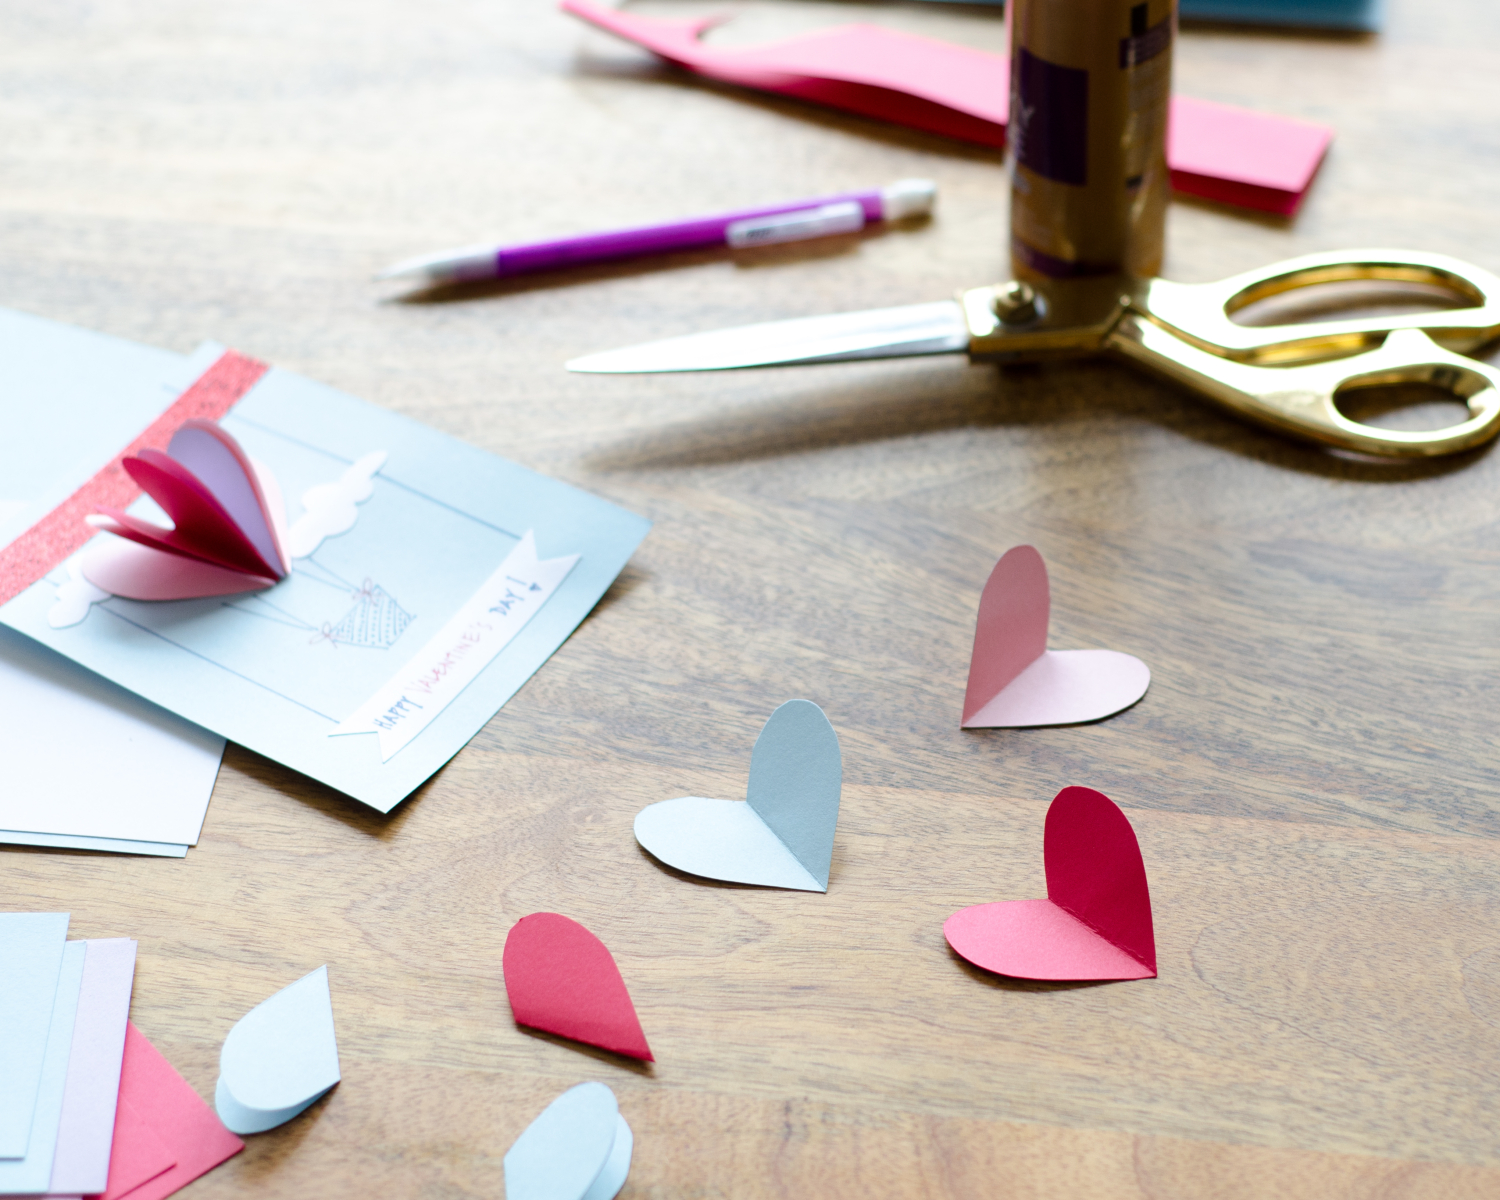 Easy DIY Valentines with 3D paper hearts. Great Valentine's craft for kids that can also be used for exchanging cards at school!